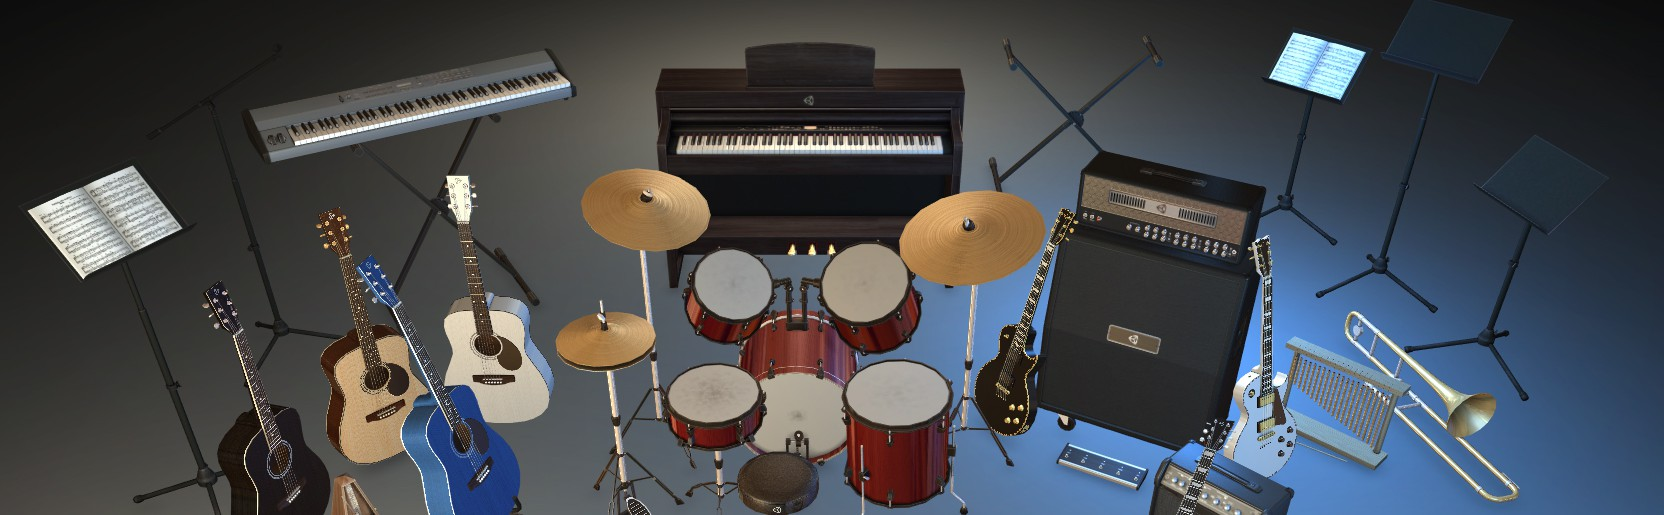 05_musical_instruments